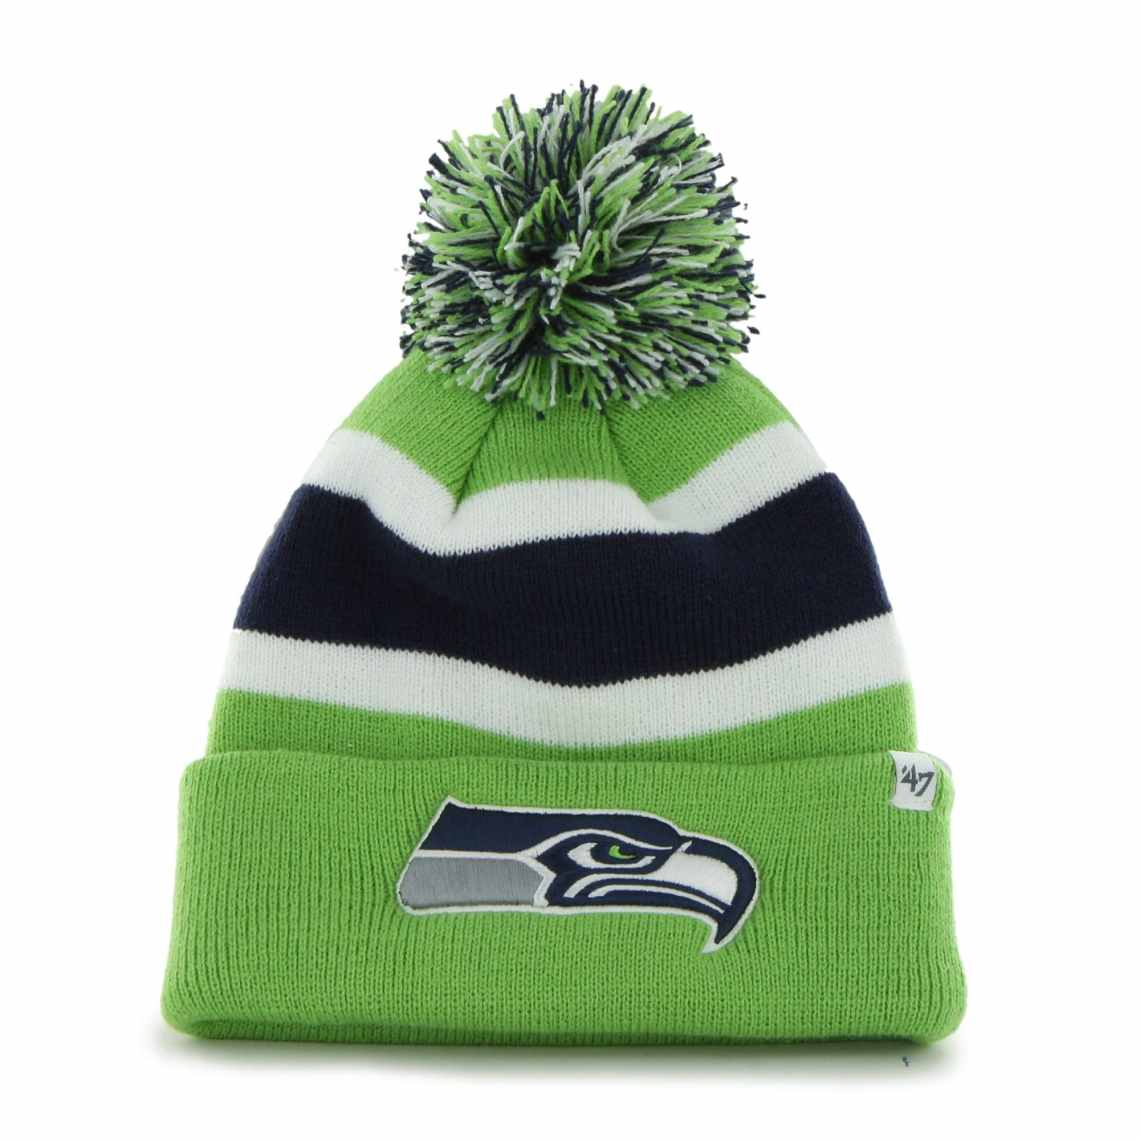 '47 Brand Seattle Seahawks Breakaway Knit Beanie - Neon Green